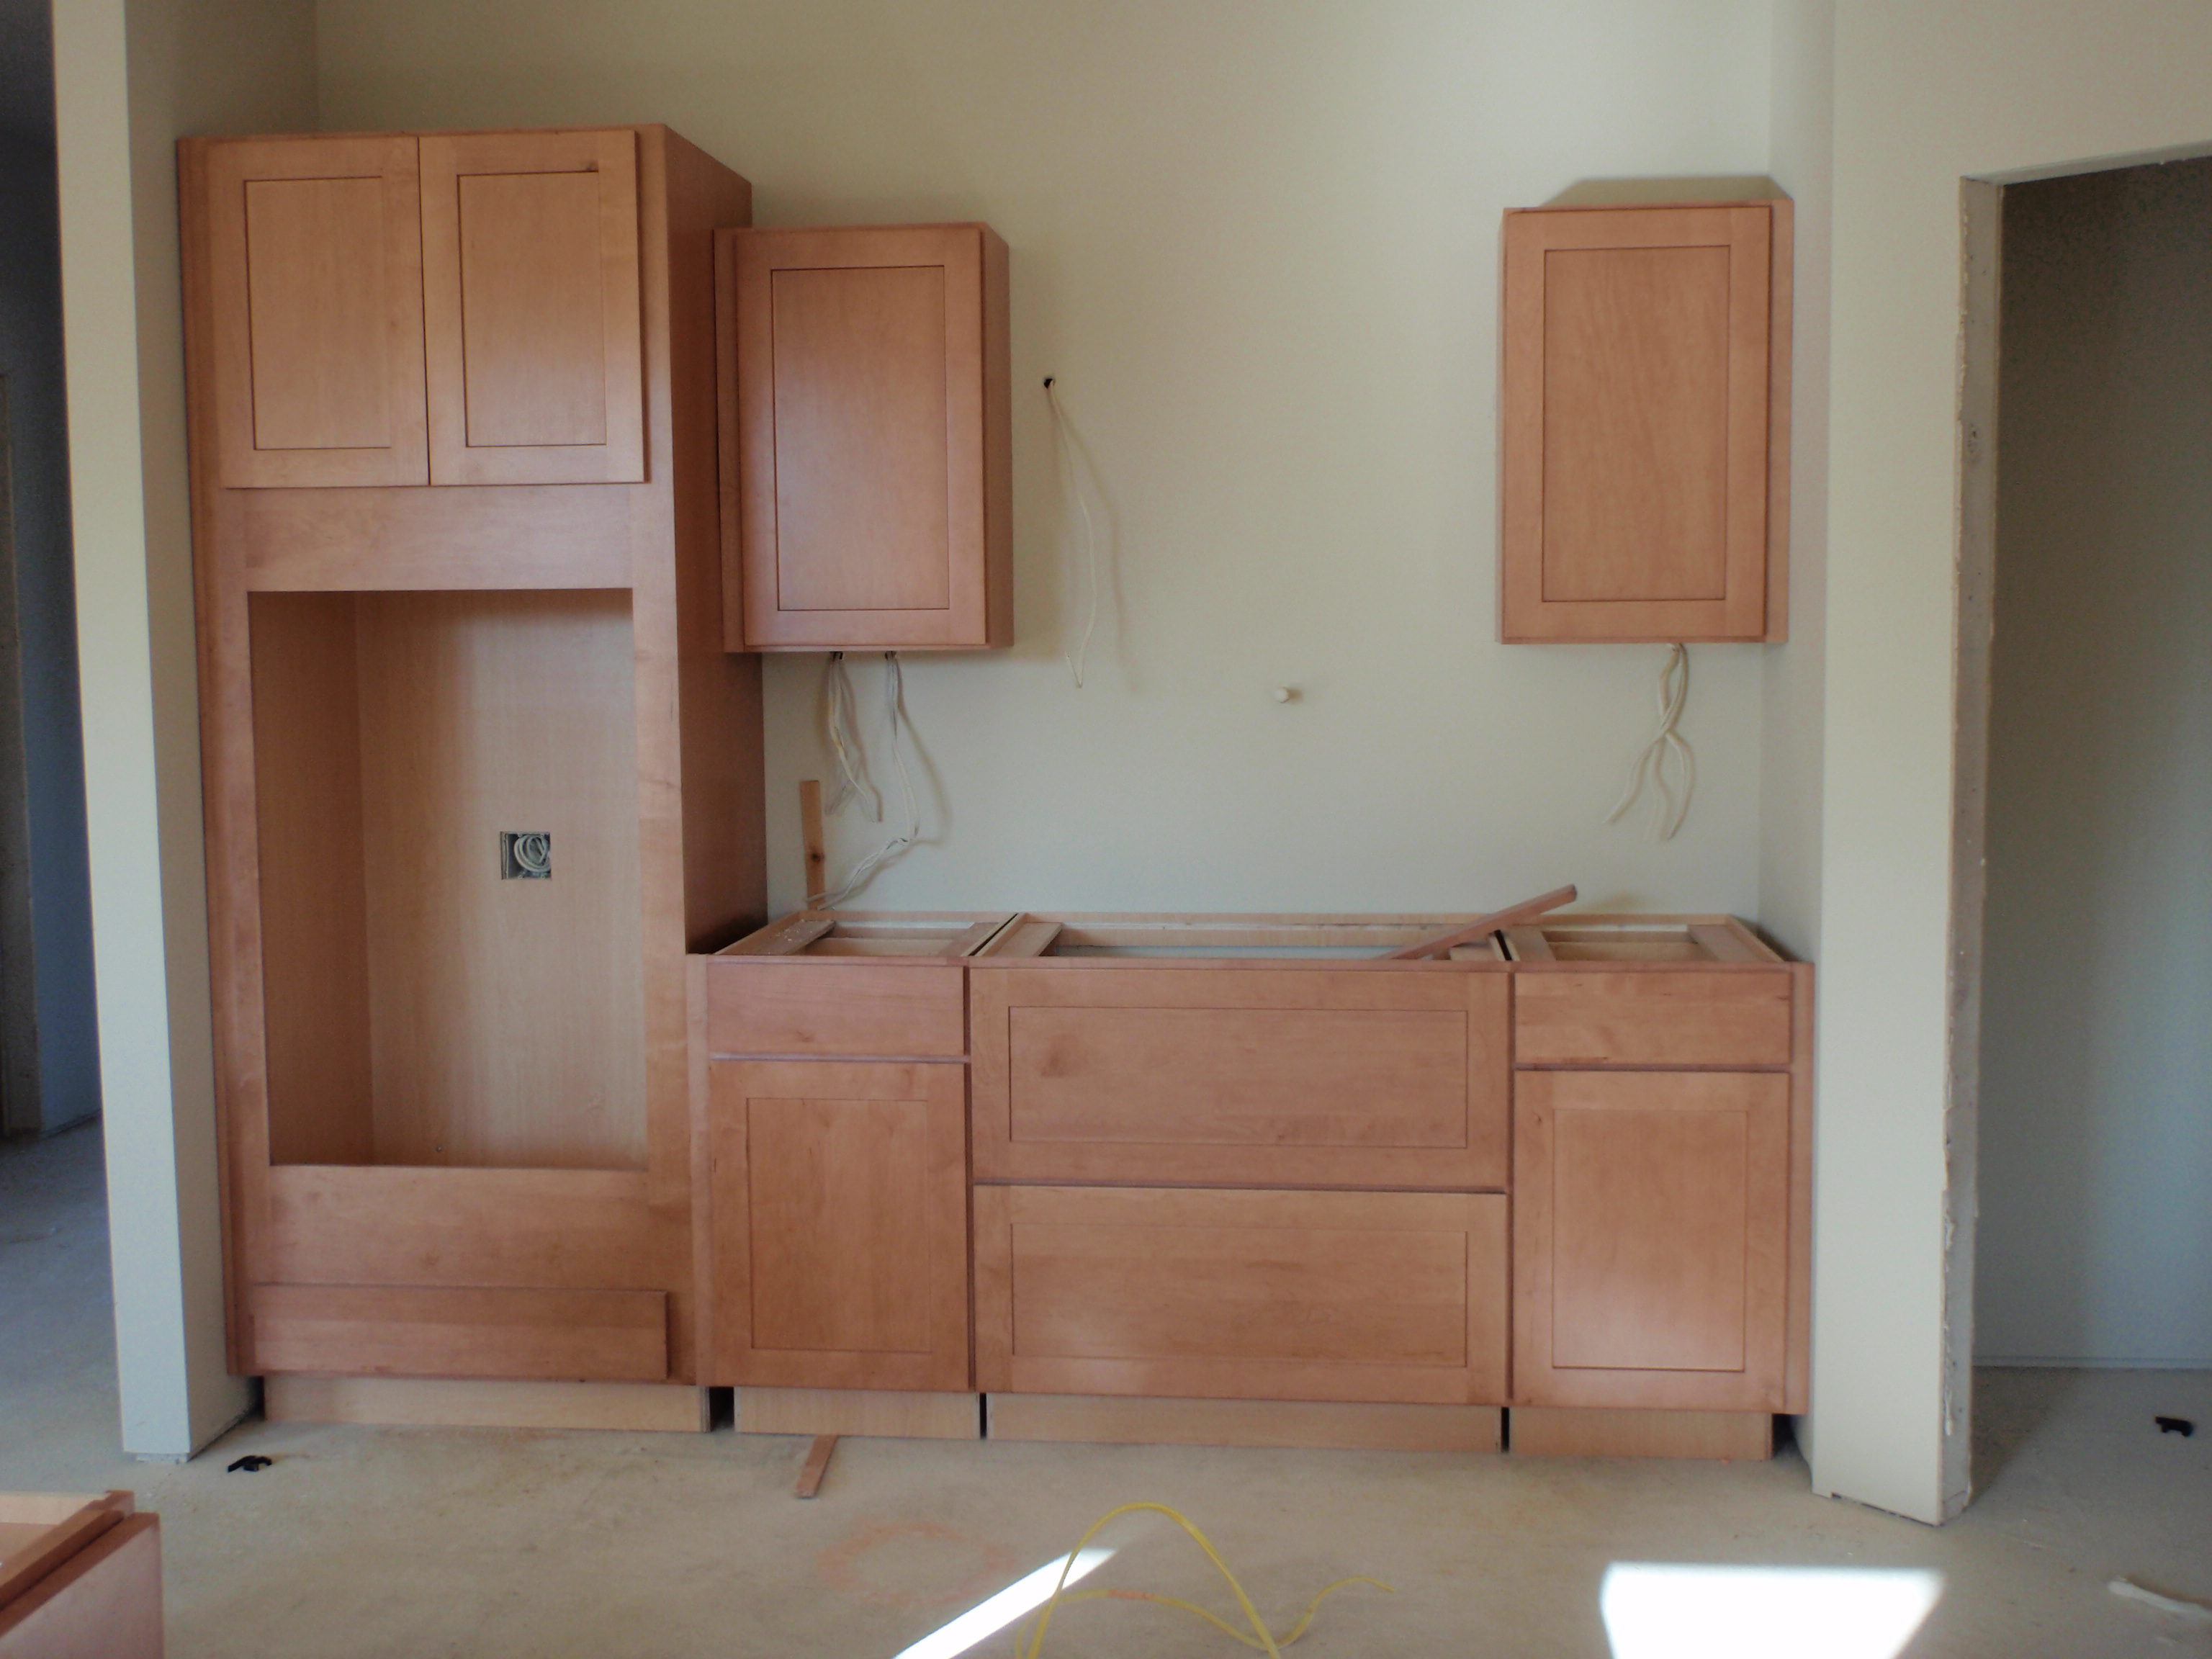 Fullsize Of Wall Oven Cabinet